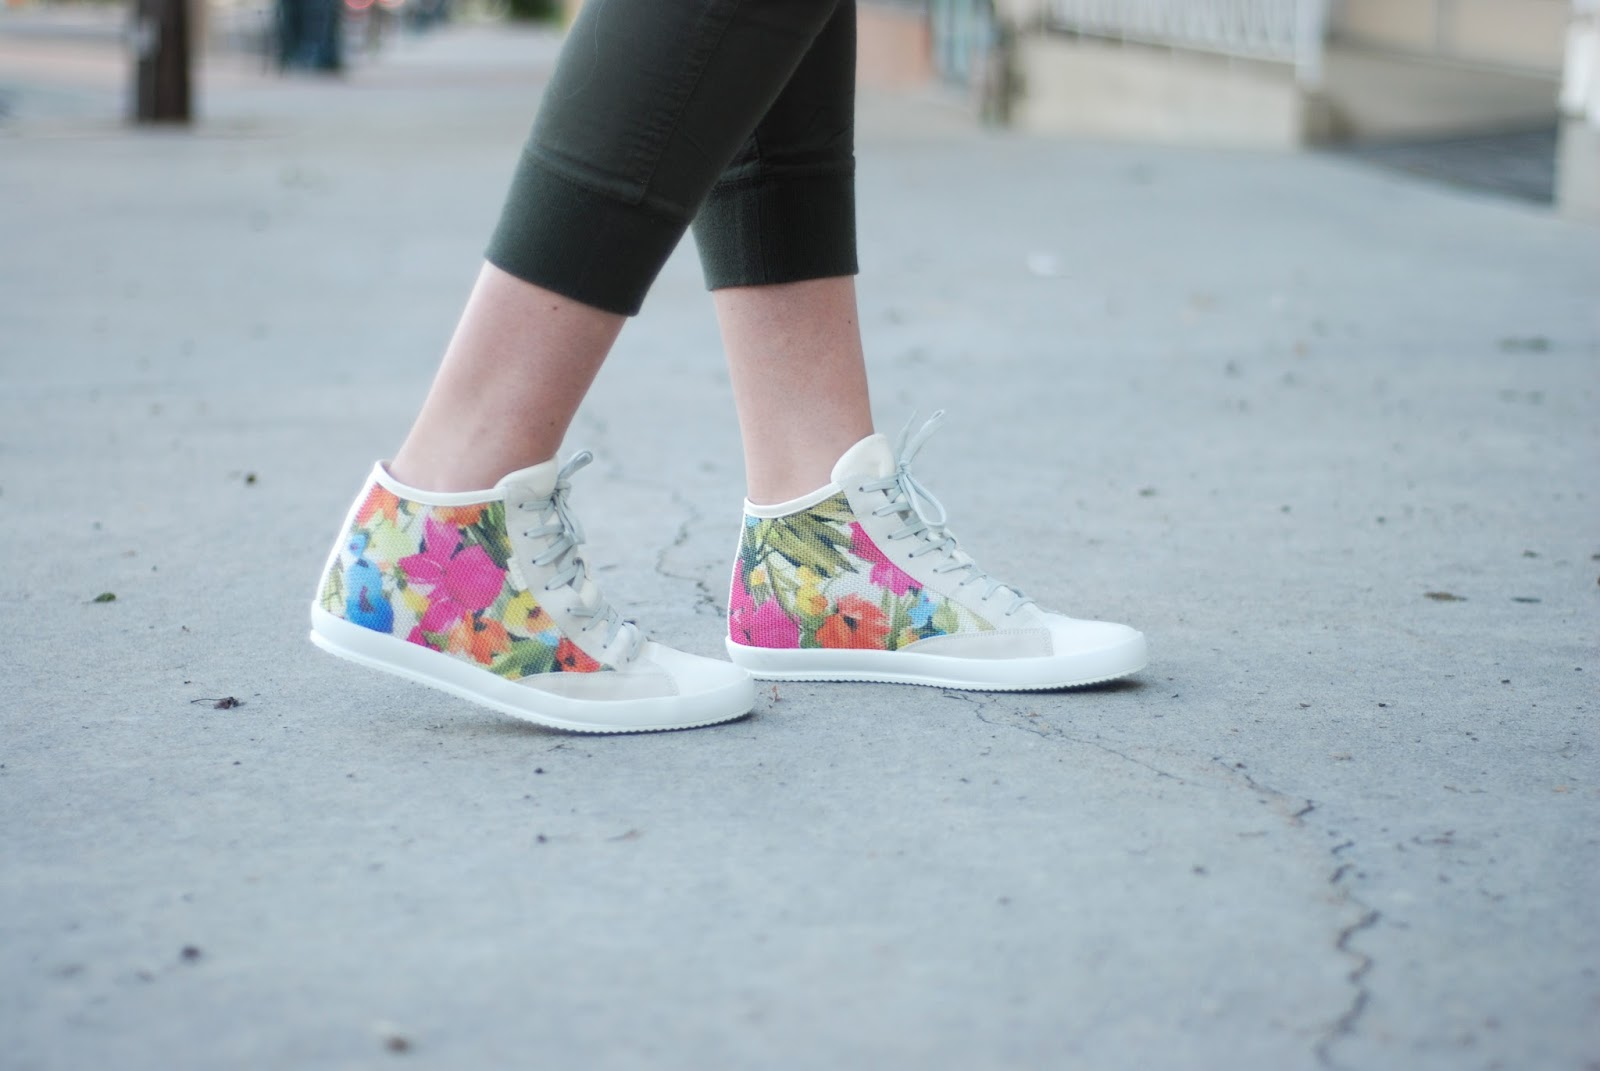 FRAU Shoes, Floral High Tops, Utah Fashion Blogger